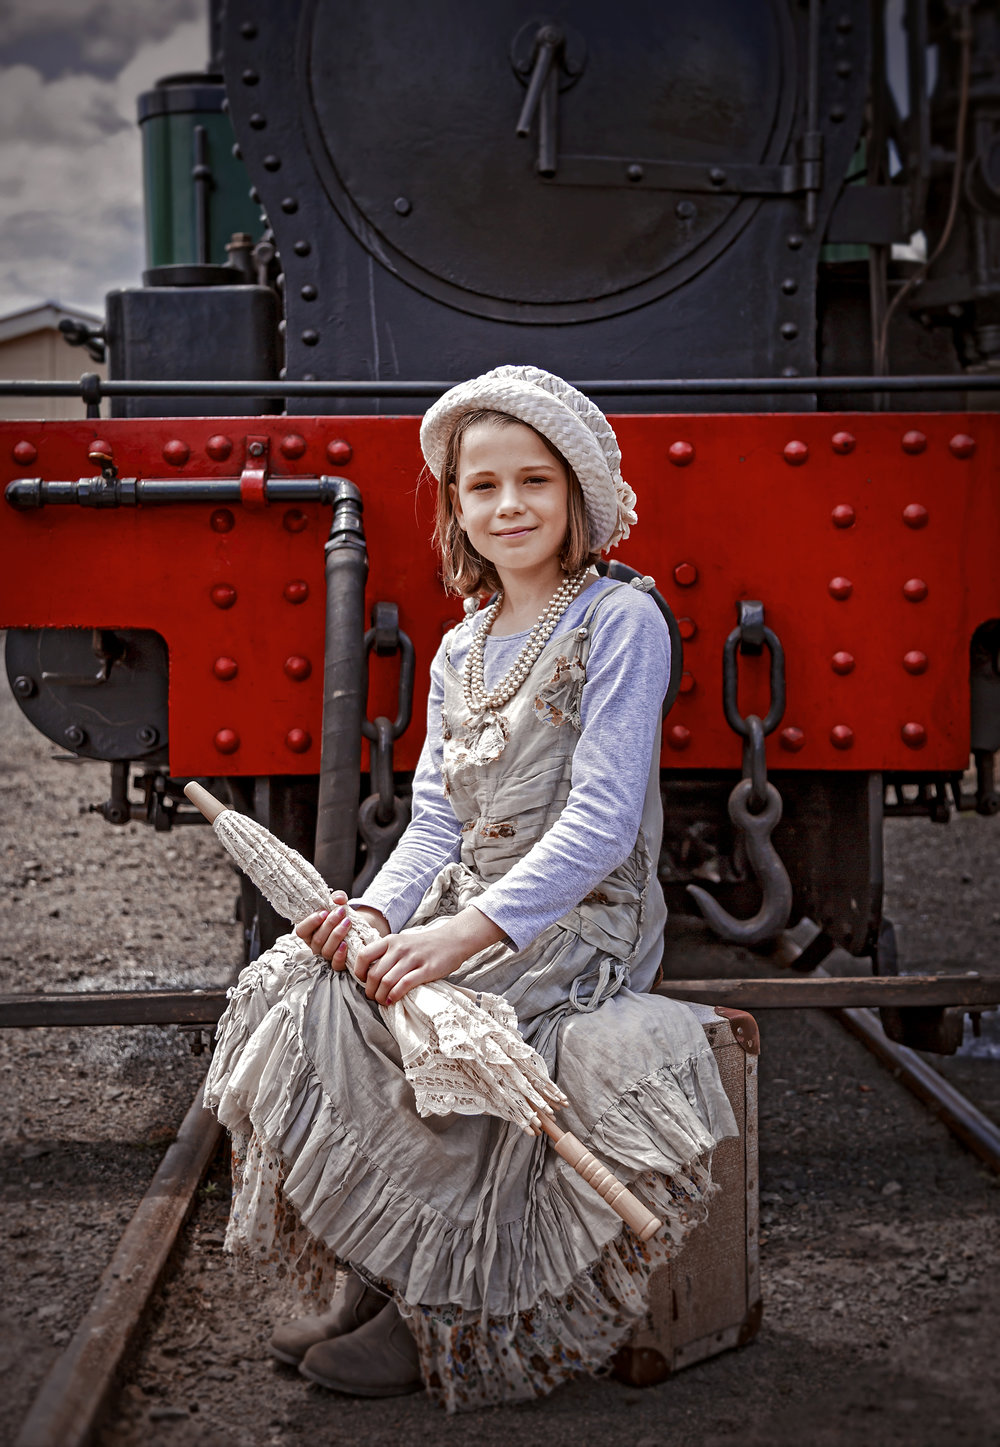 11 Steampunk child trainresized.jpg